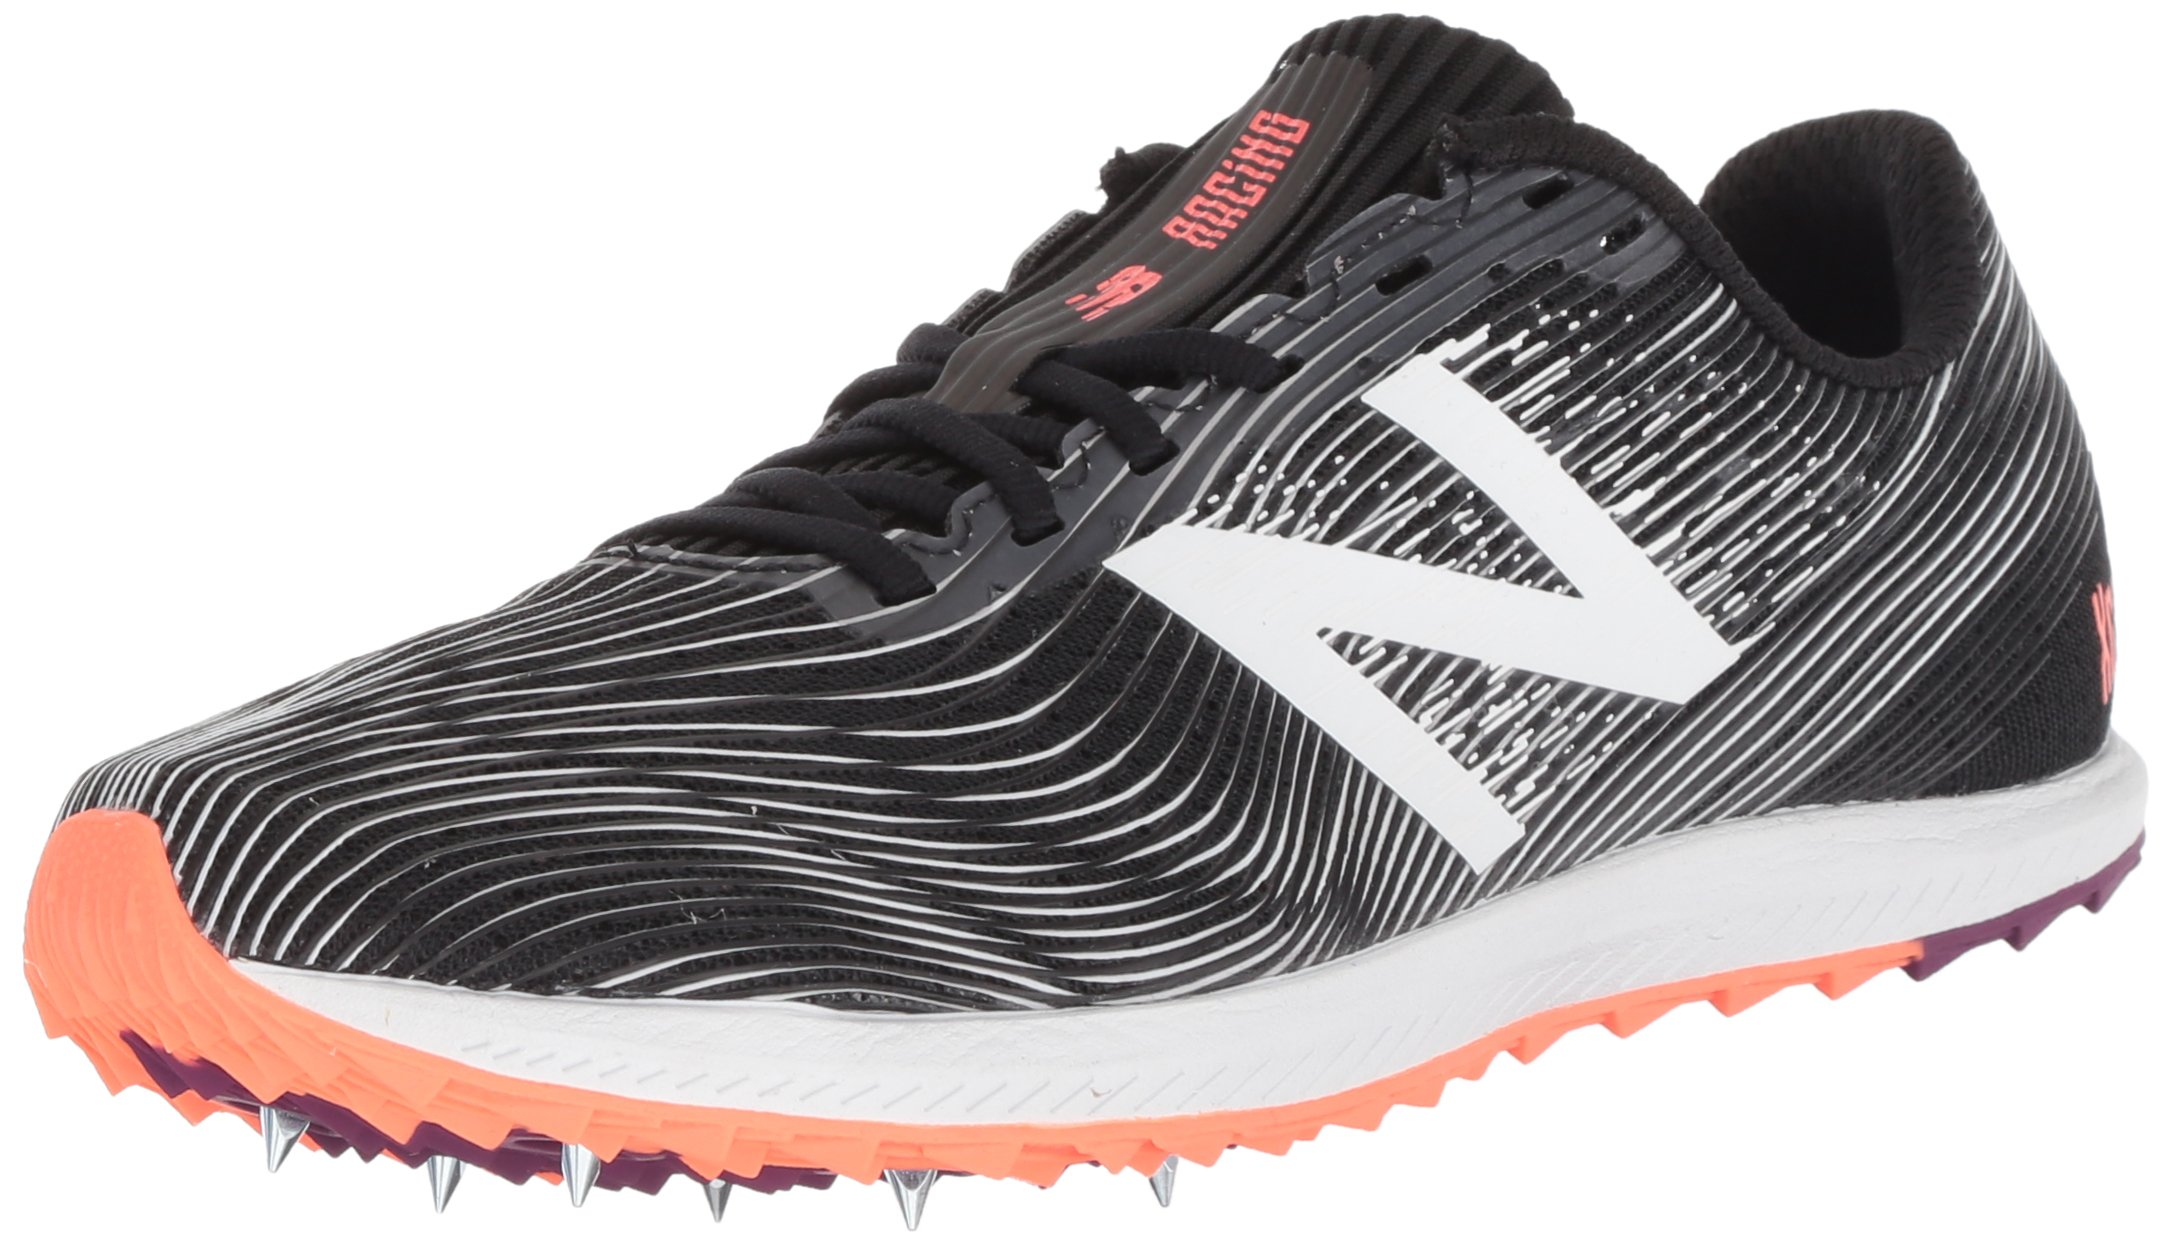 New Balance Women's 7v1 Cross Country Running Shoe Black, 5.5 B US by New Balance (Image #1)